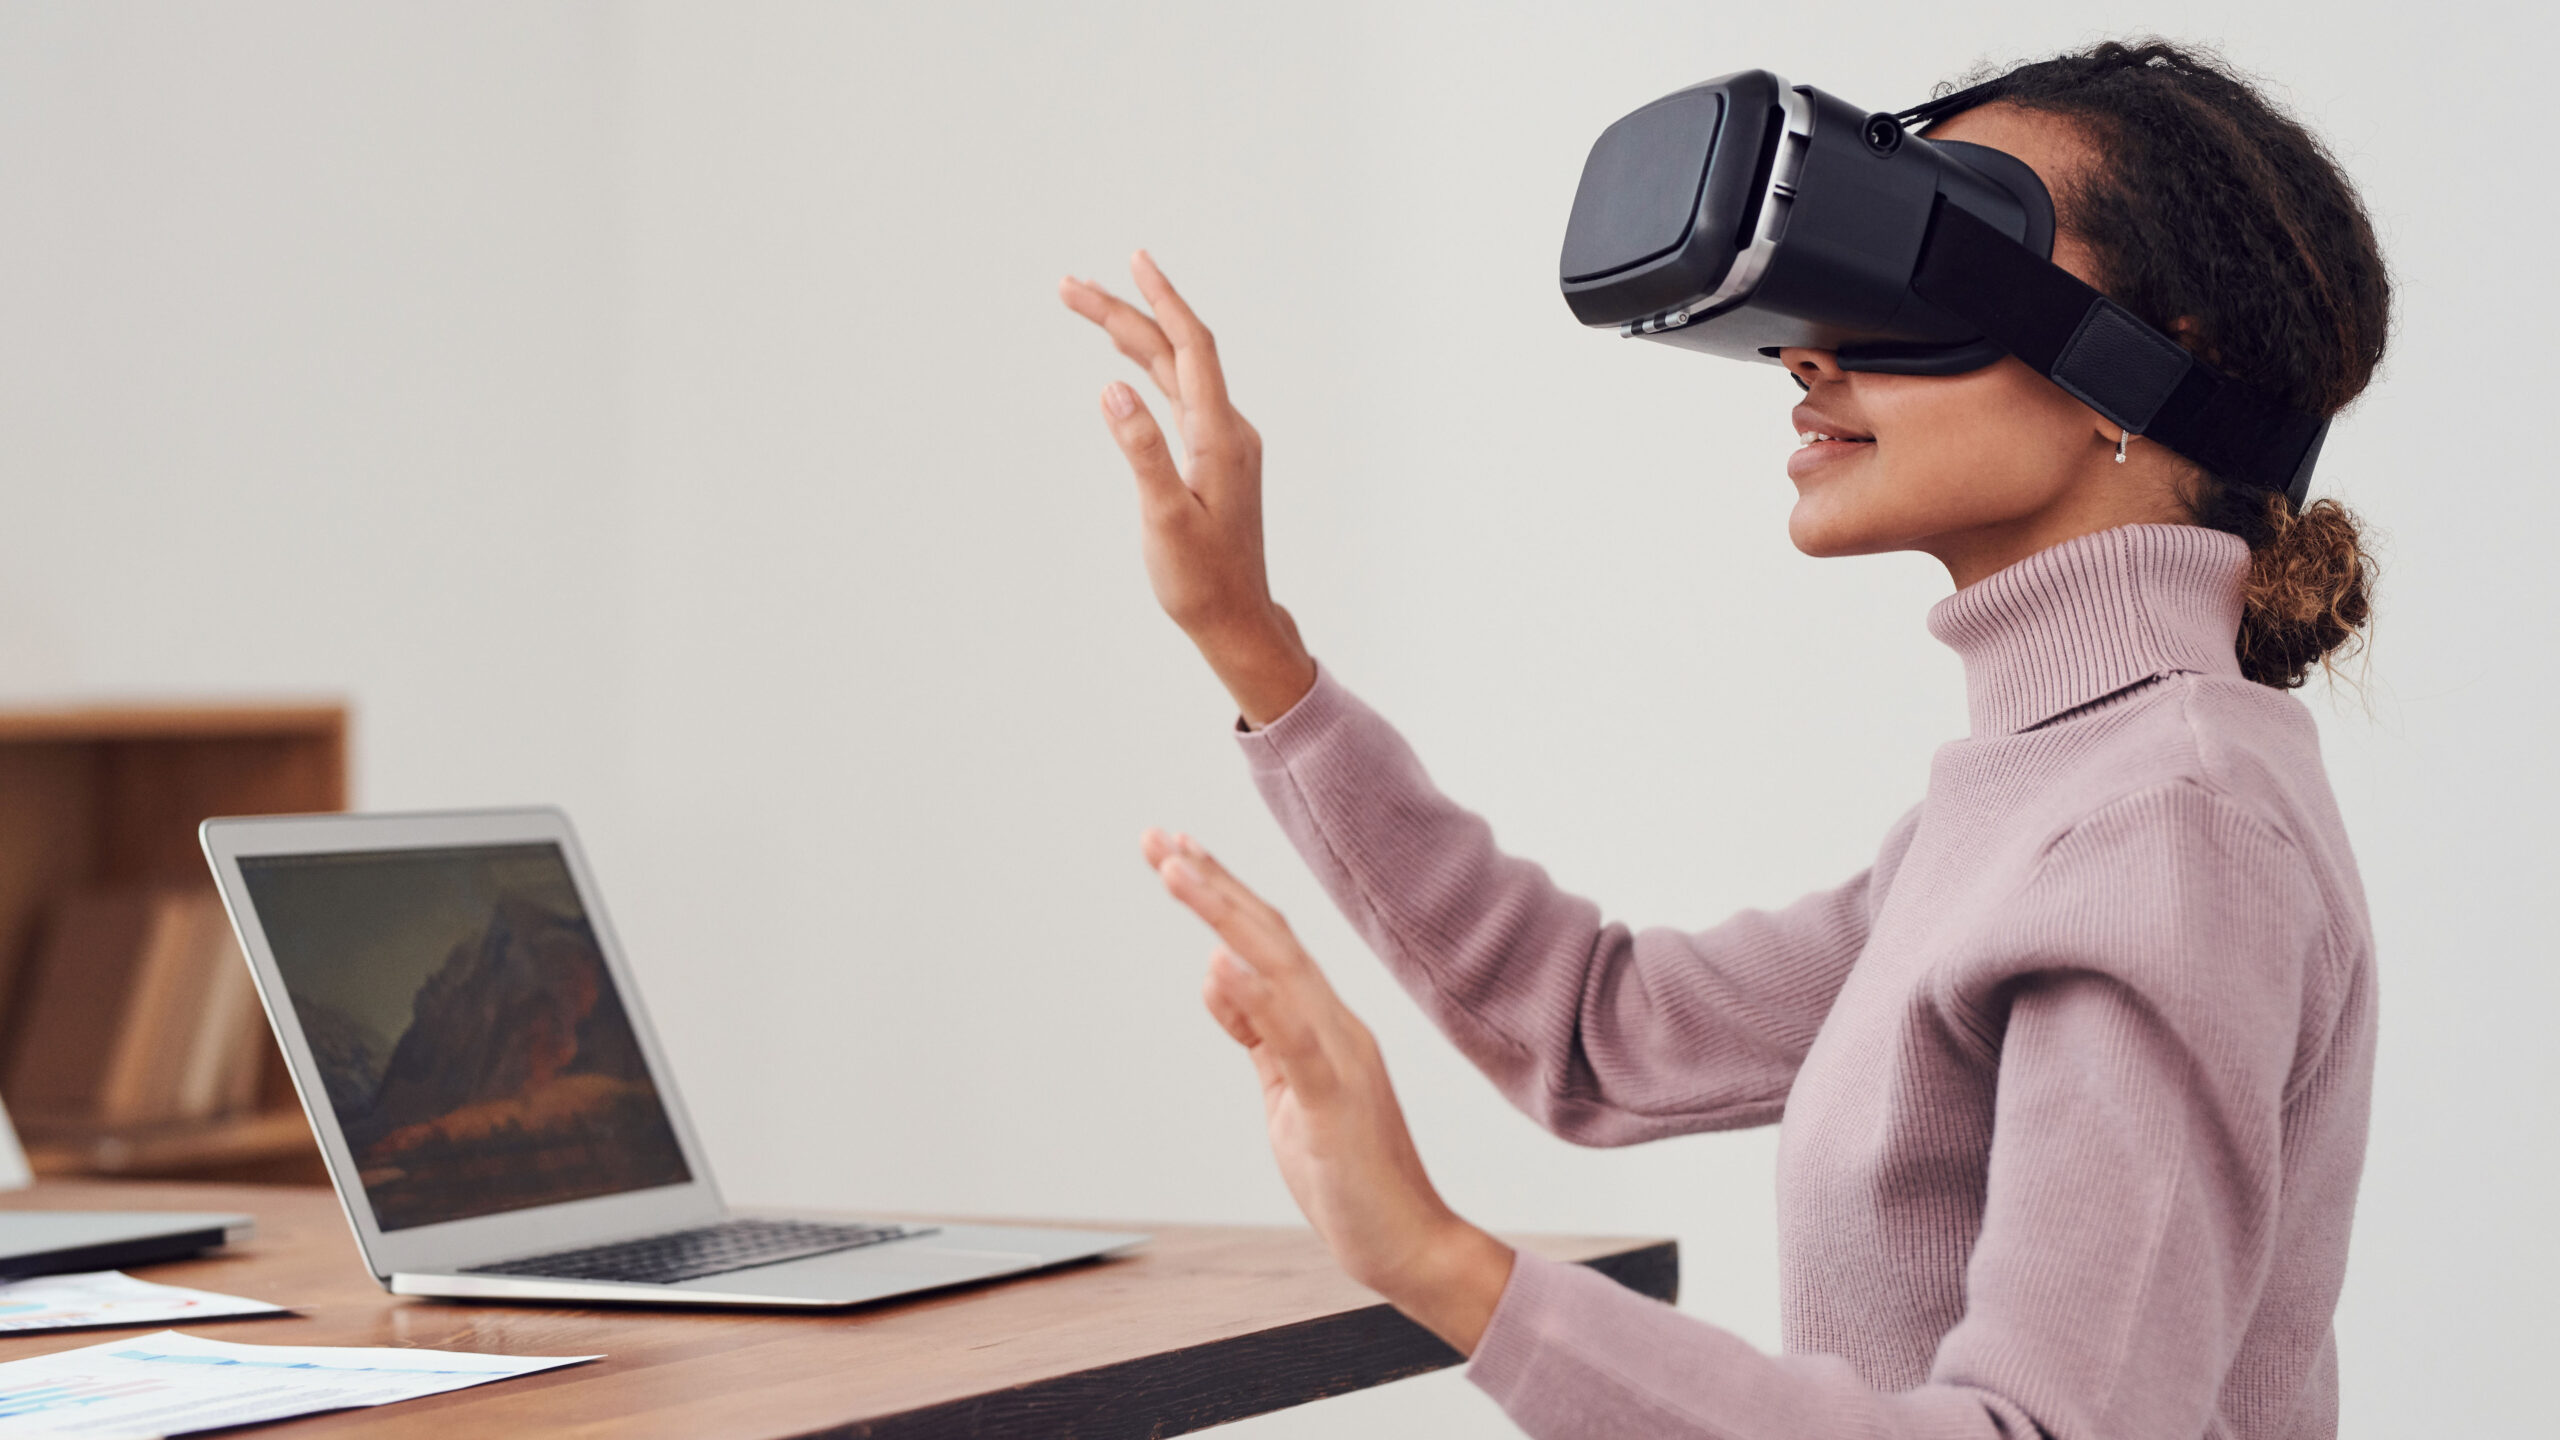 Woman sits at laptop on desk wearing VR headset. Her arms are raised and she smiles.